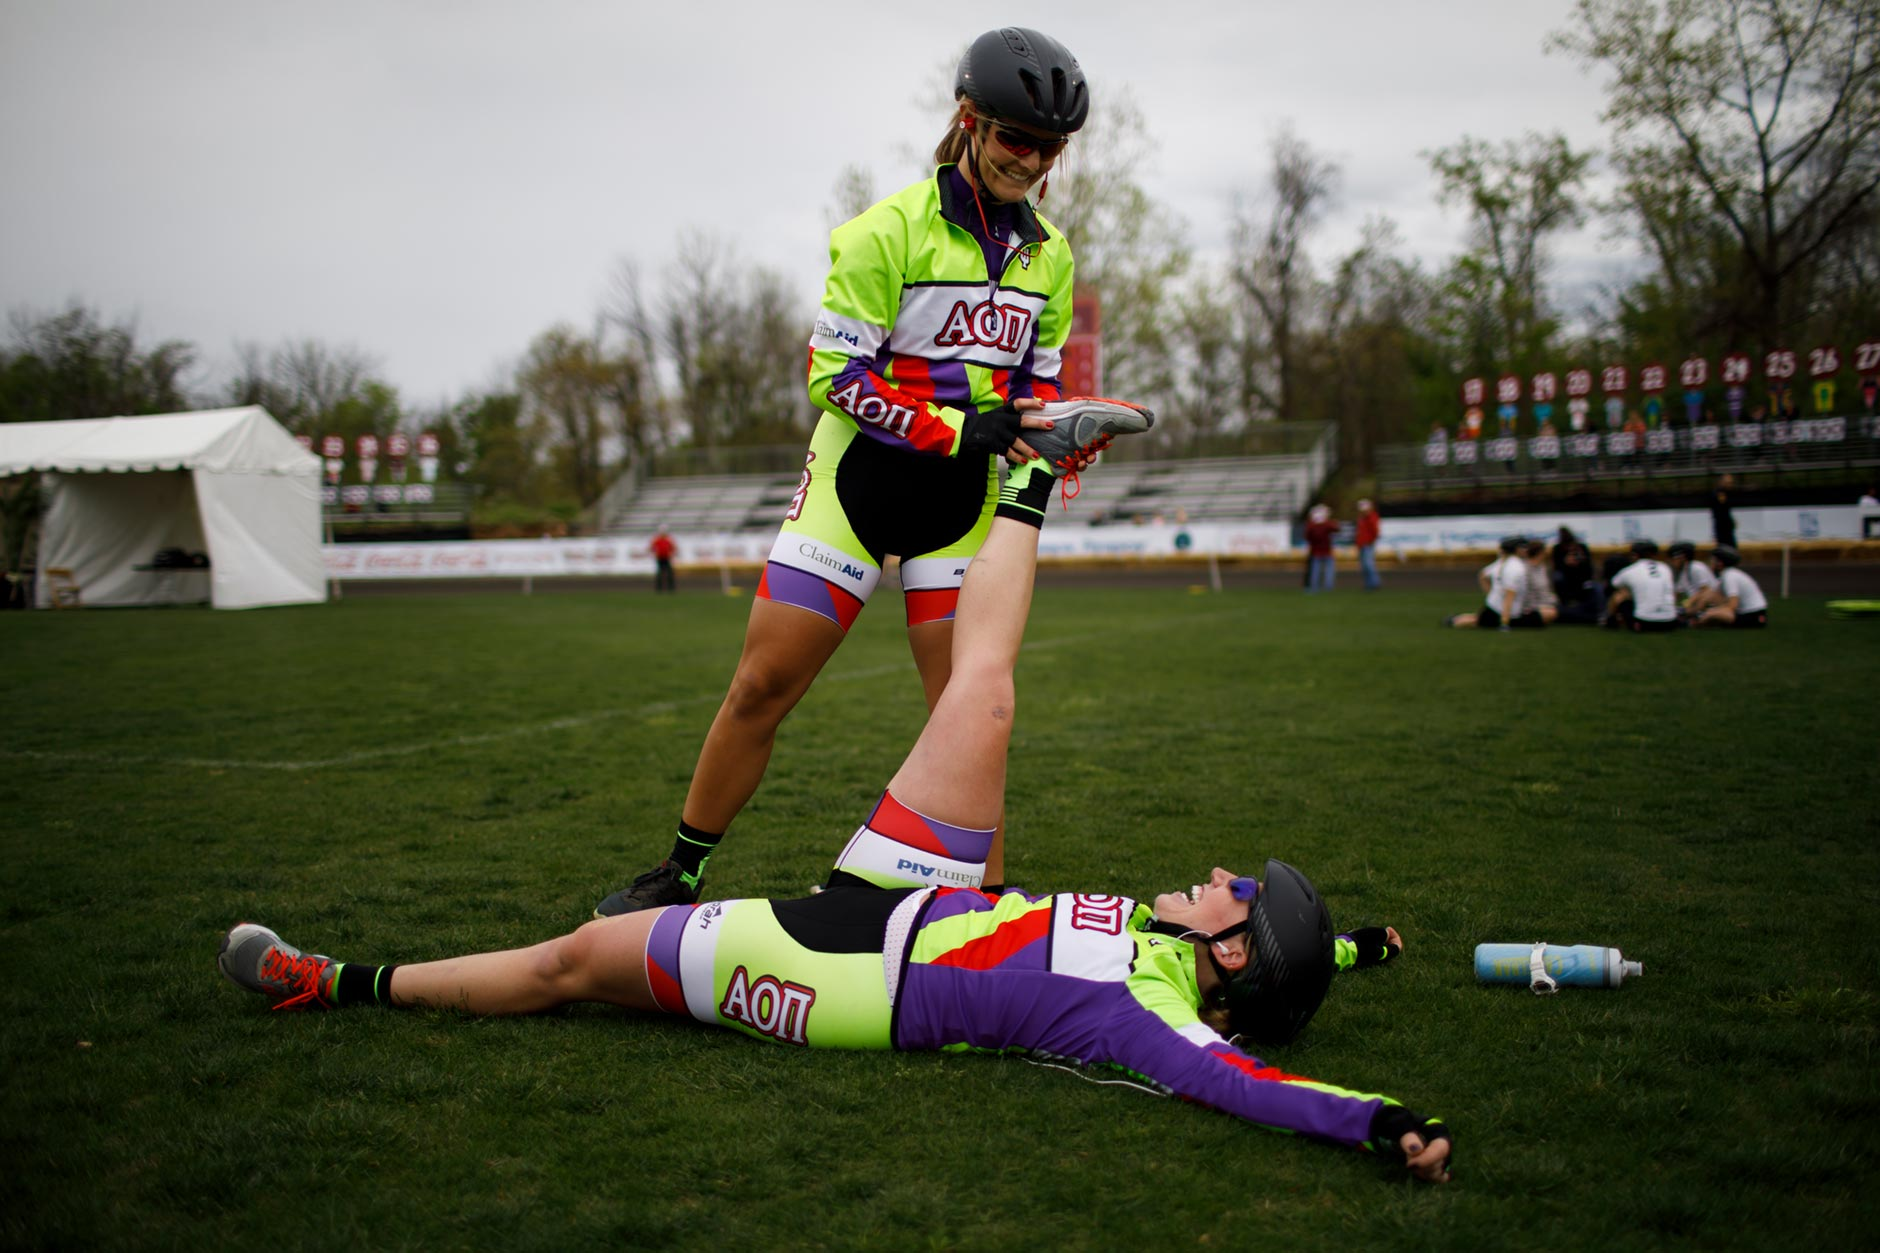 Alpha Omicron Pi rider Audrey Healey, top, stretches out teammate Kaci Garrity before the Women's Little 500 at Bill Armstrong Stadium on Friday, April 21, 2017. (James Brosher/IU Communications)